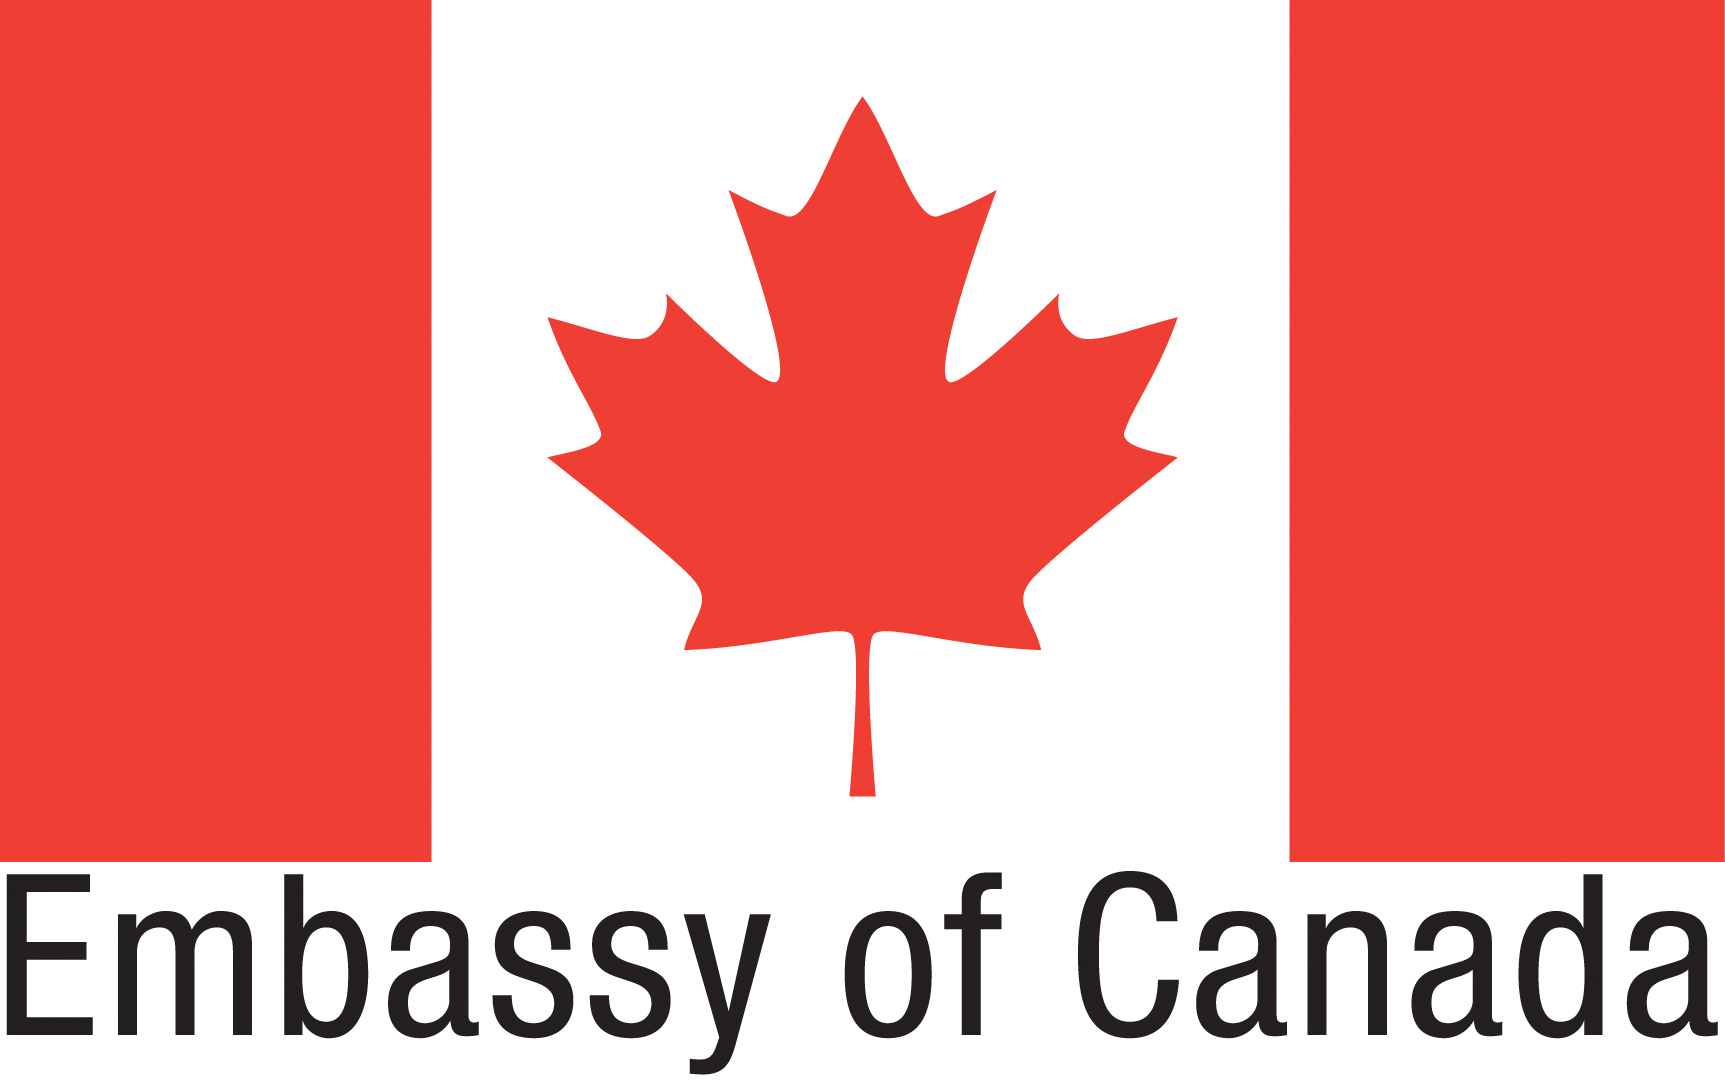 The Embassy of Canada